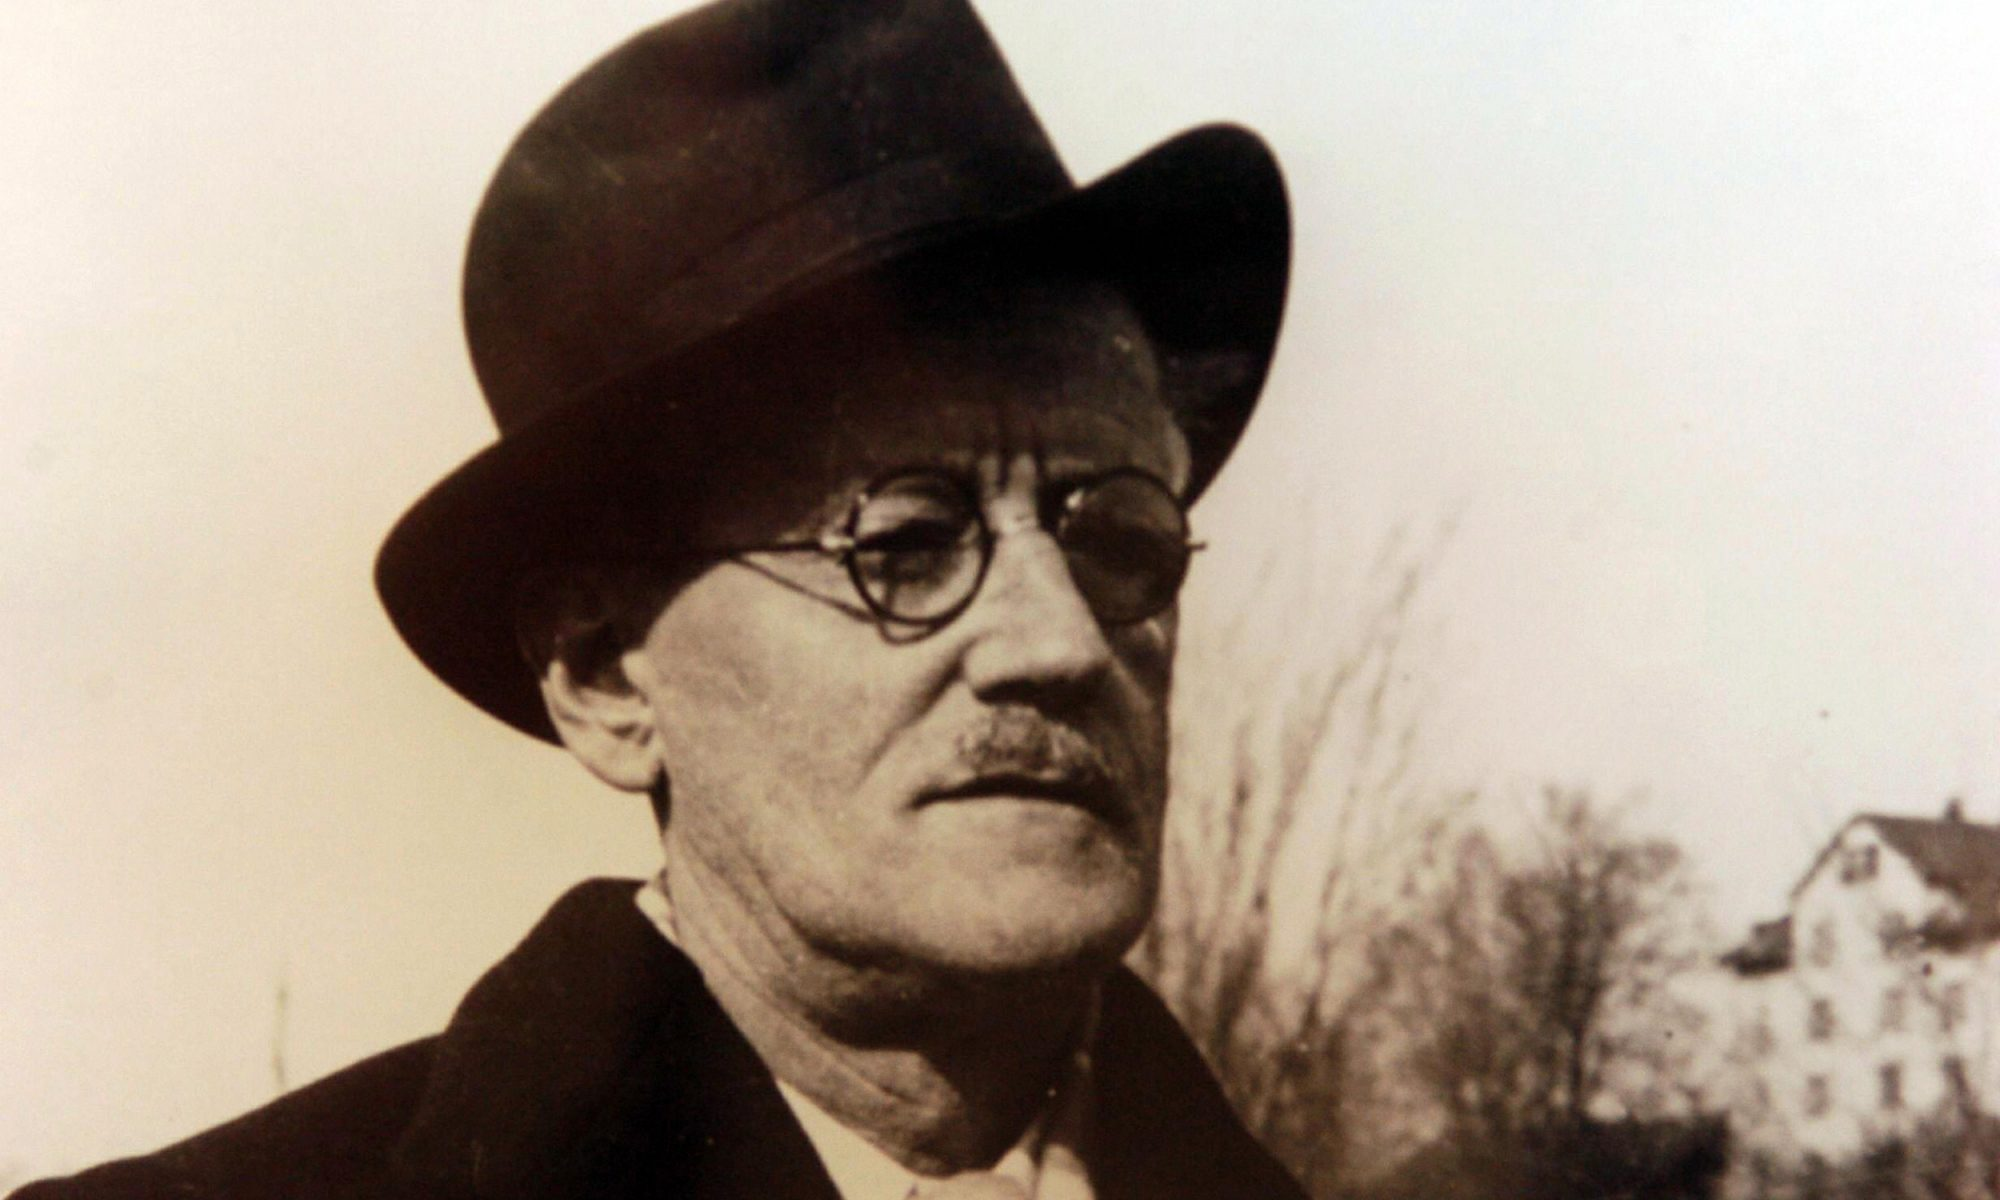 EC: Celebrate James Joyce's Bloomsday by Eating Offal for Breakfast